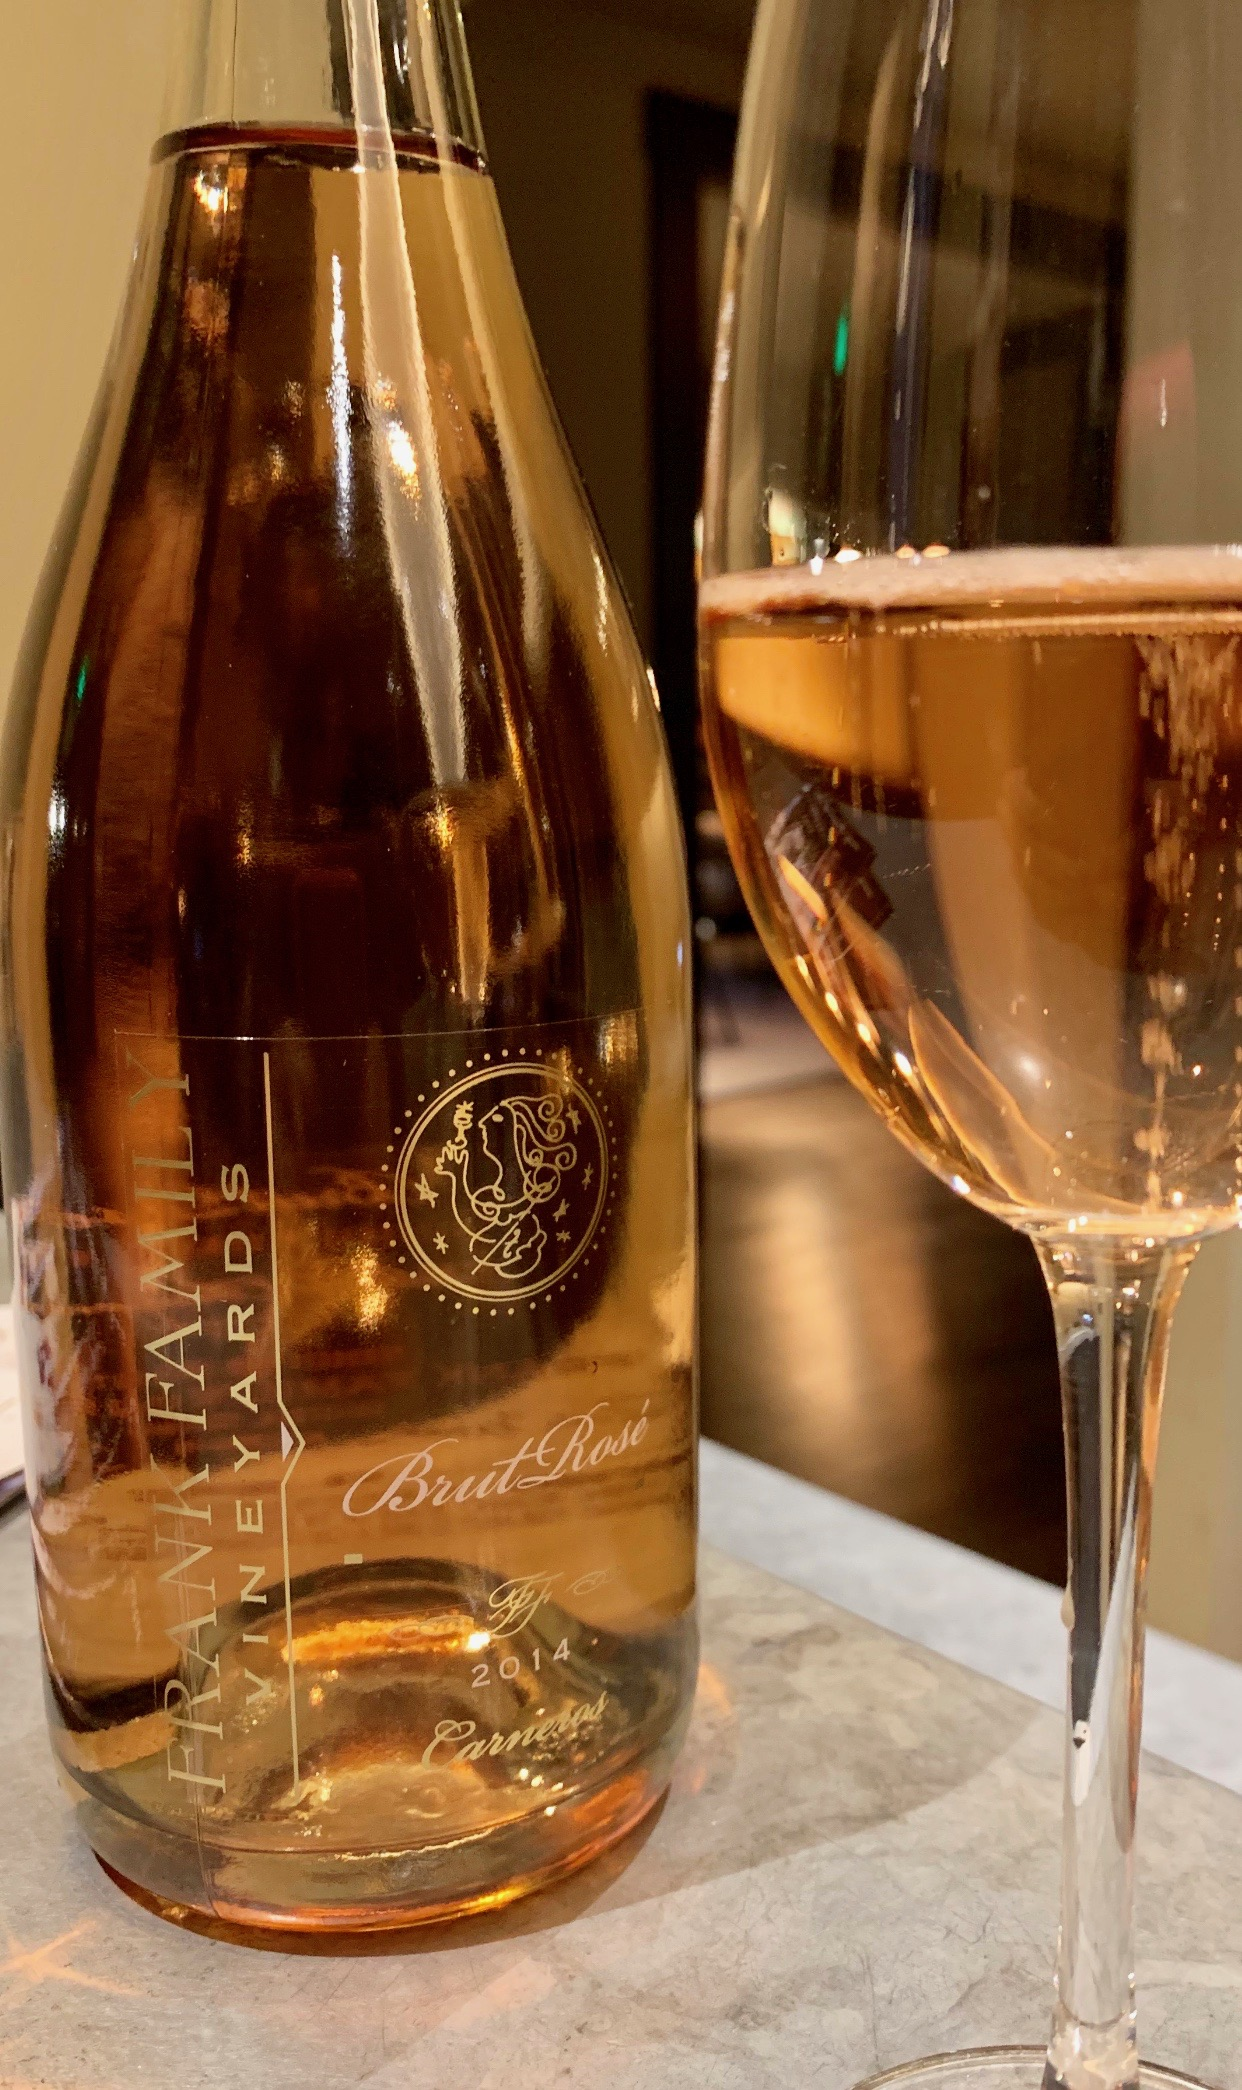 Frank Family Vineyards    Brut rosé, a blend of Pinot Noir and Chardonnay, is a vibrant, well-balanced sparkler.